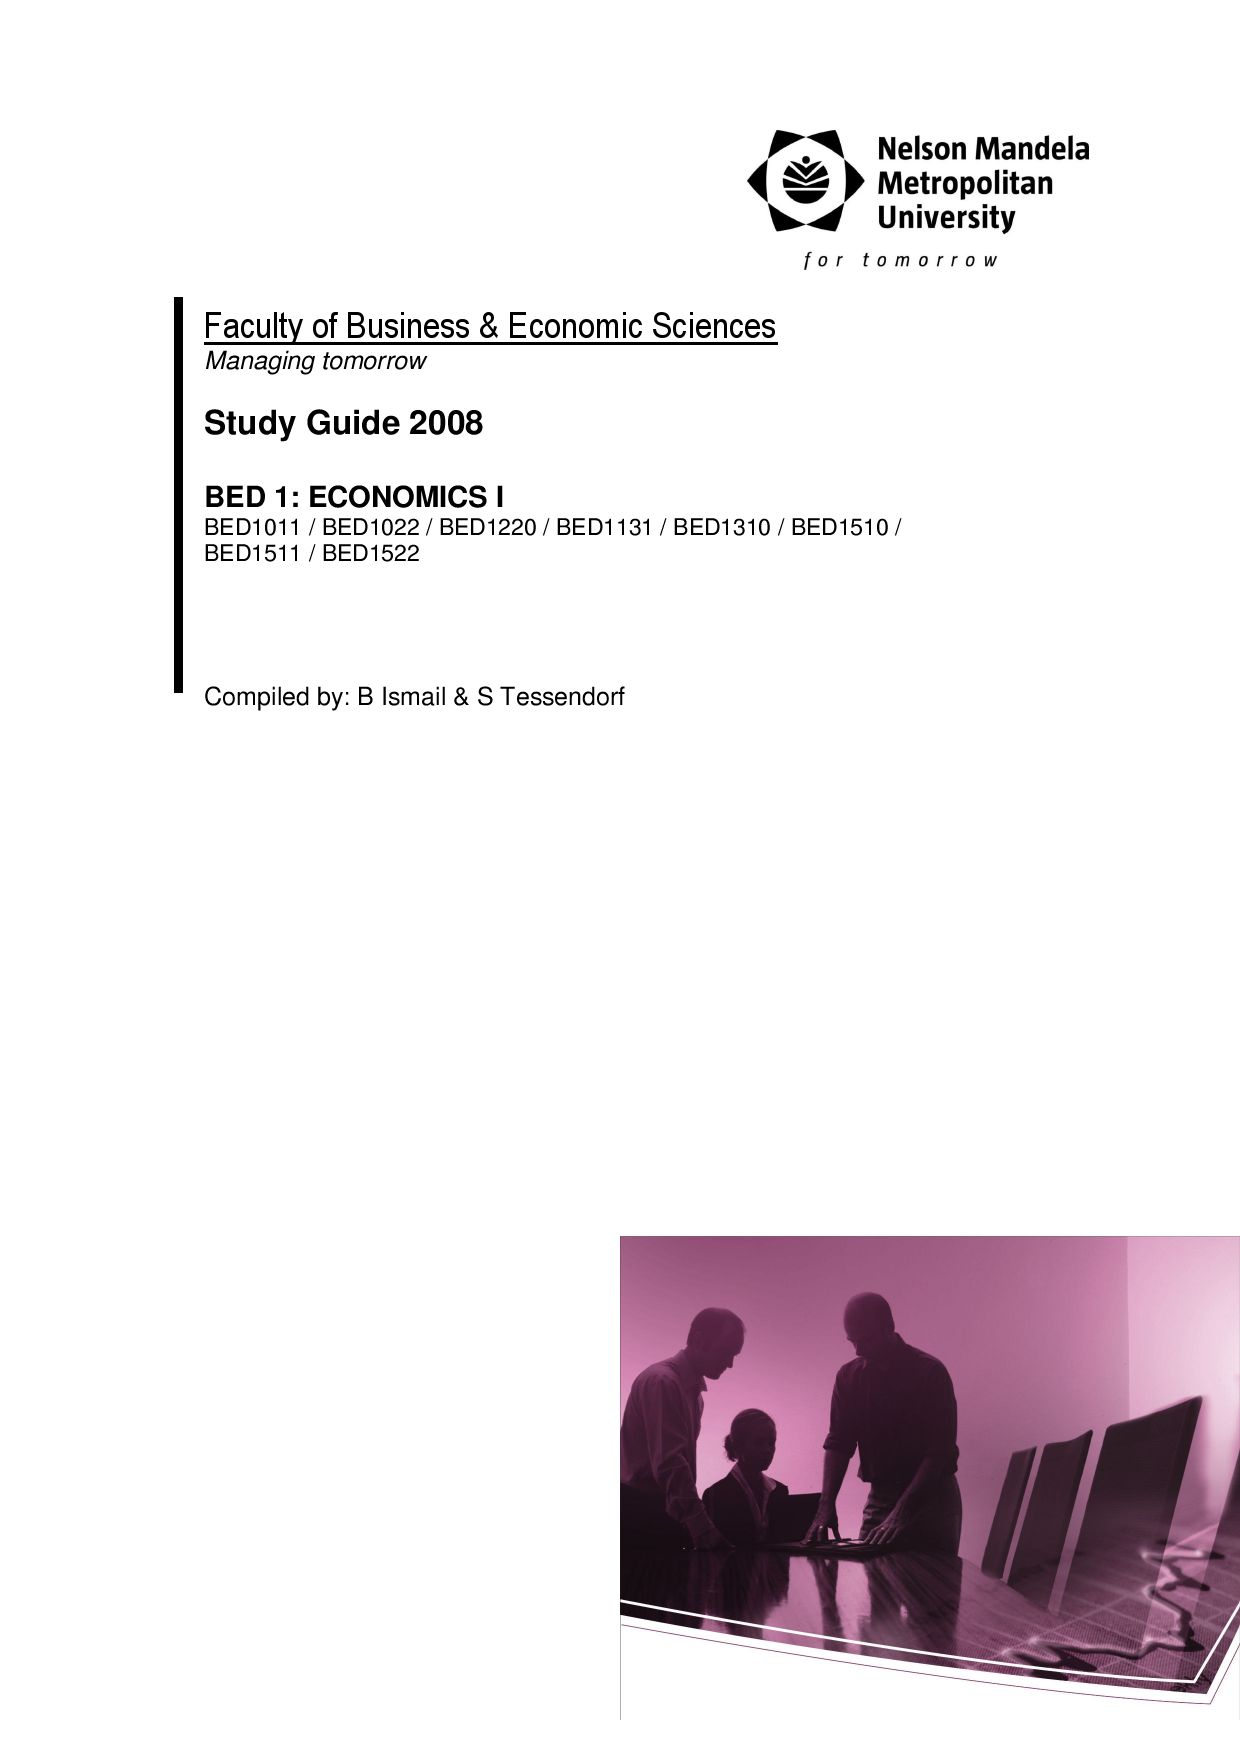 business economics module study guide Ba (hons) degree course in business management with economics at london south bank university (lsbu) full-time includes optional placement year in industry.